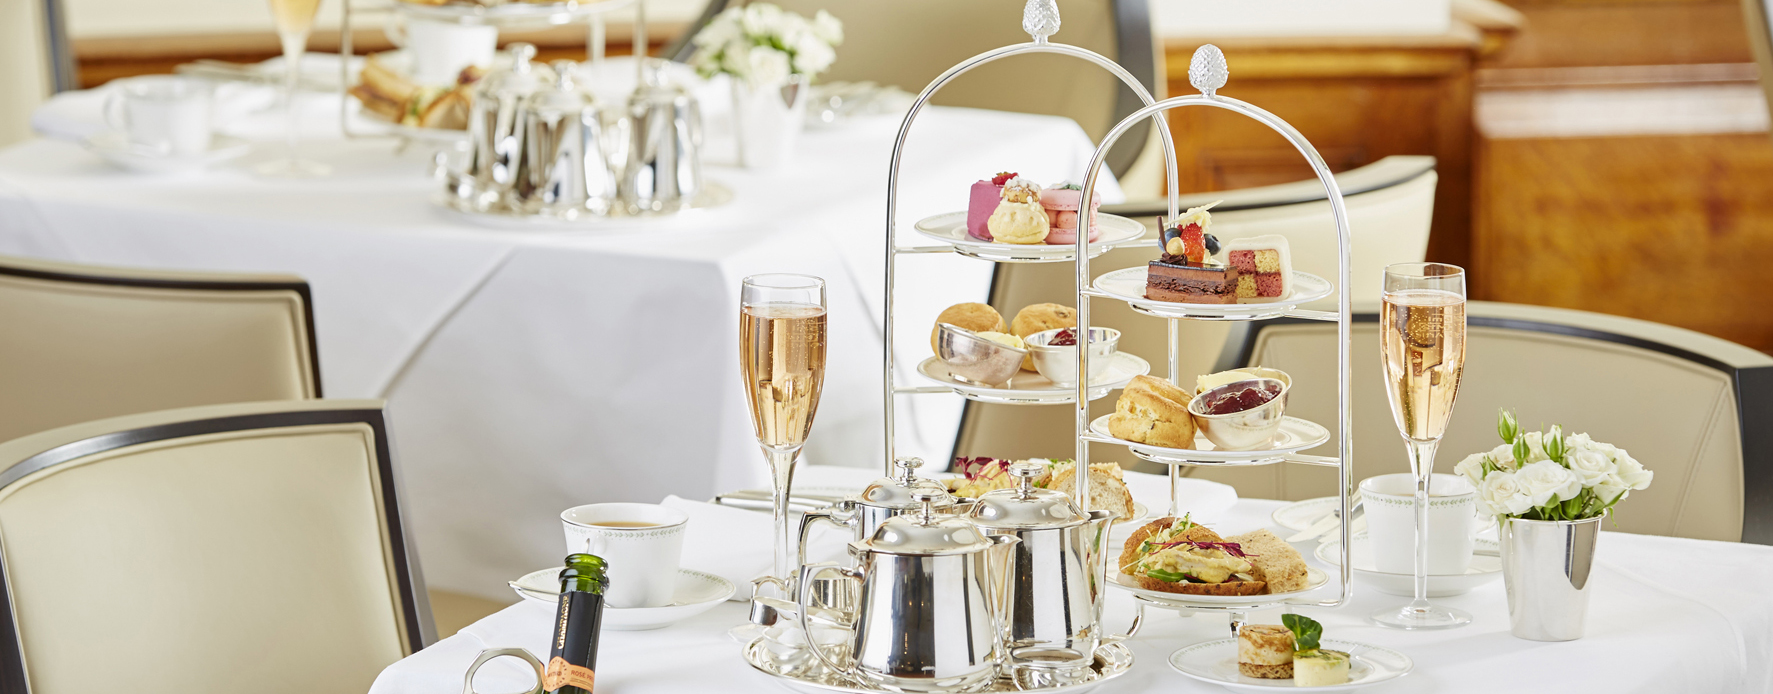 Lady Betty Afternoon Tea in the Imperial Rooms at Bettys Tea Rooms in Harrogate Champagne cakes and silver tea service